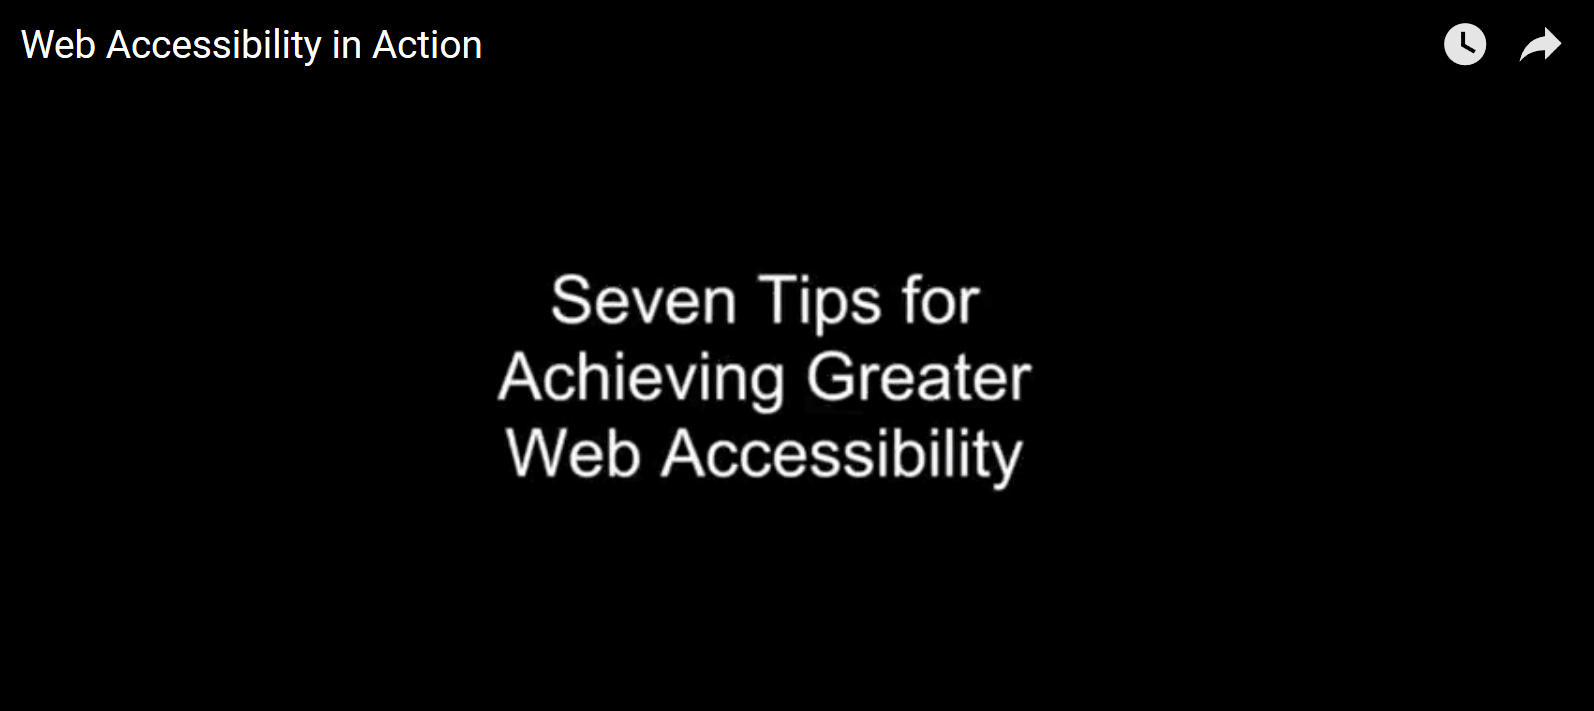 Seven tips for achieving greater web accessibility